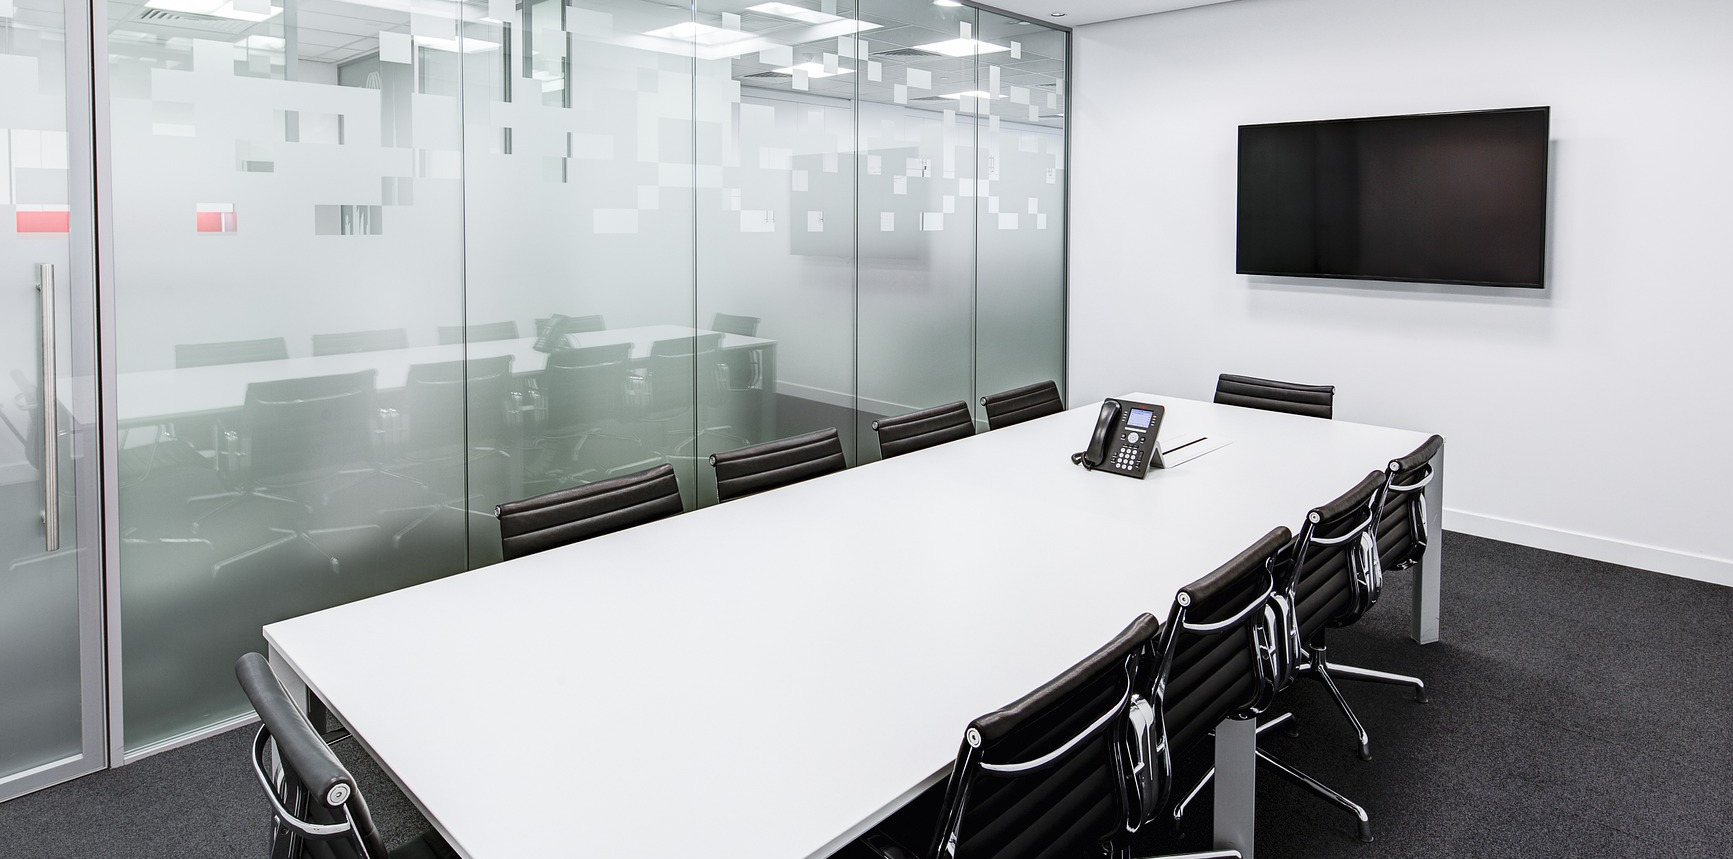 Conference Rooms Conferencing Projection Systems Lighting Shading Networking Control Wall